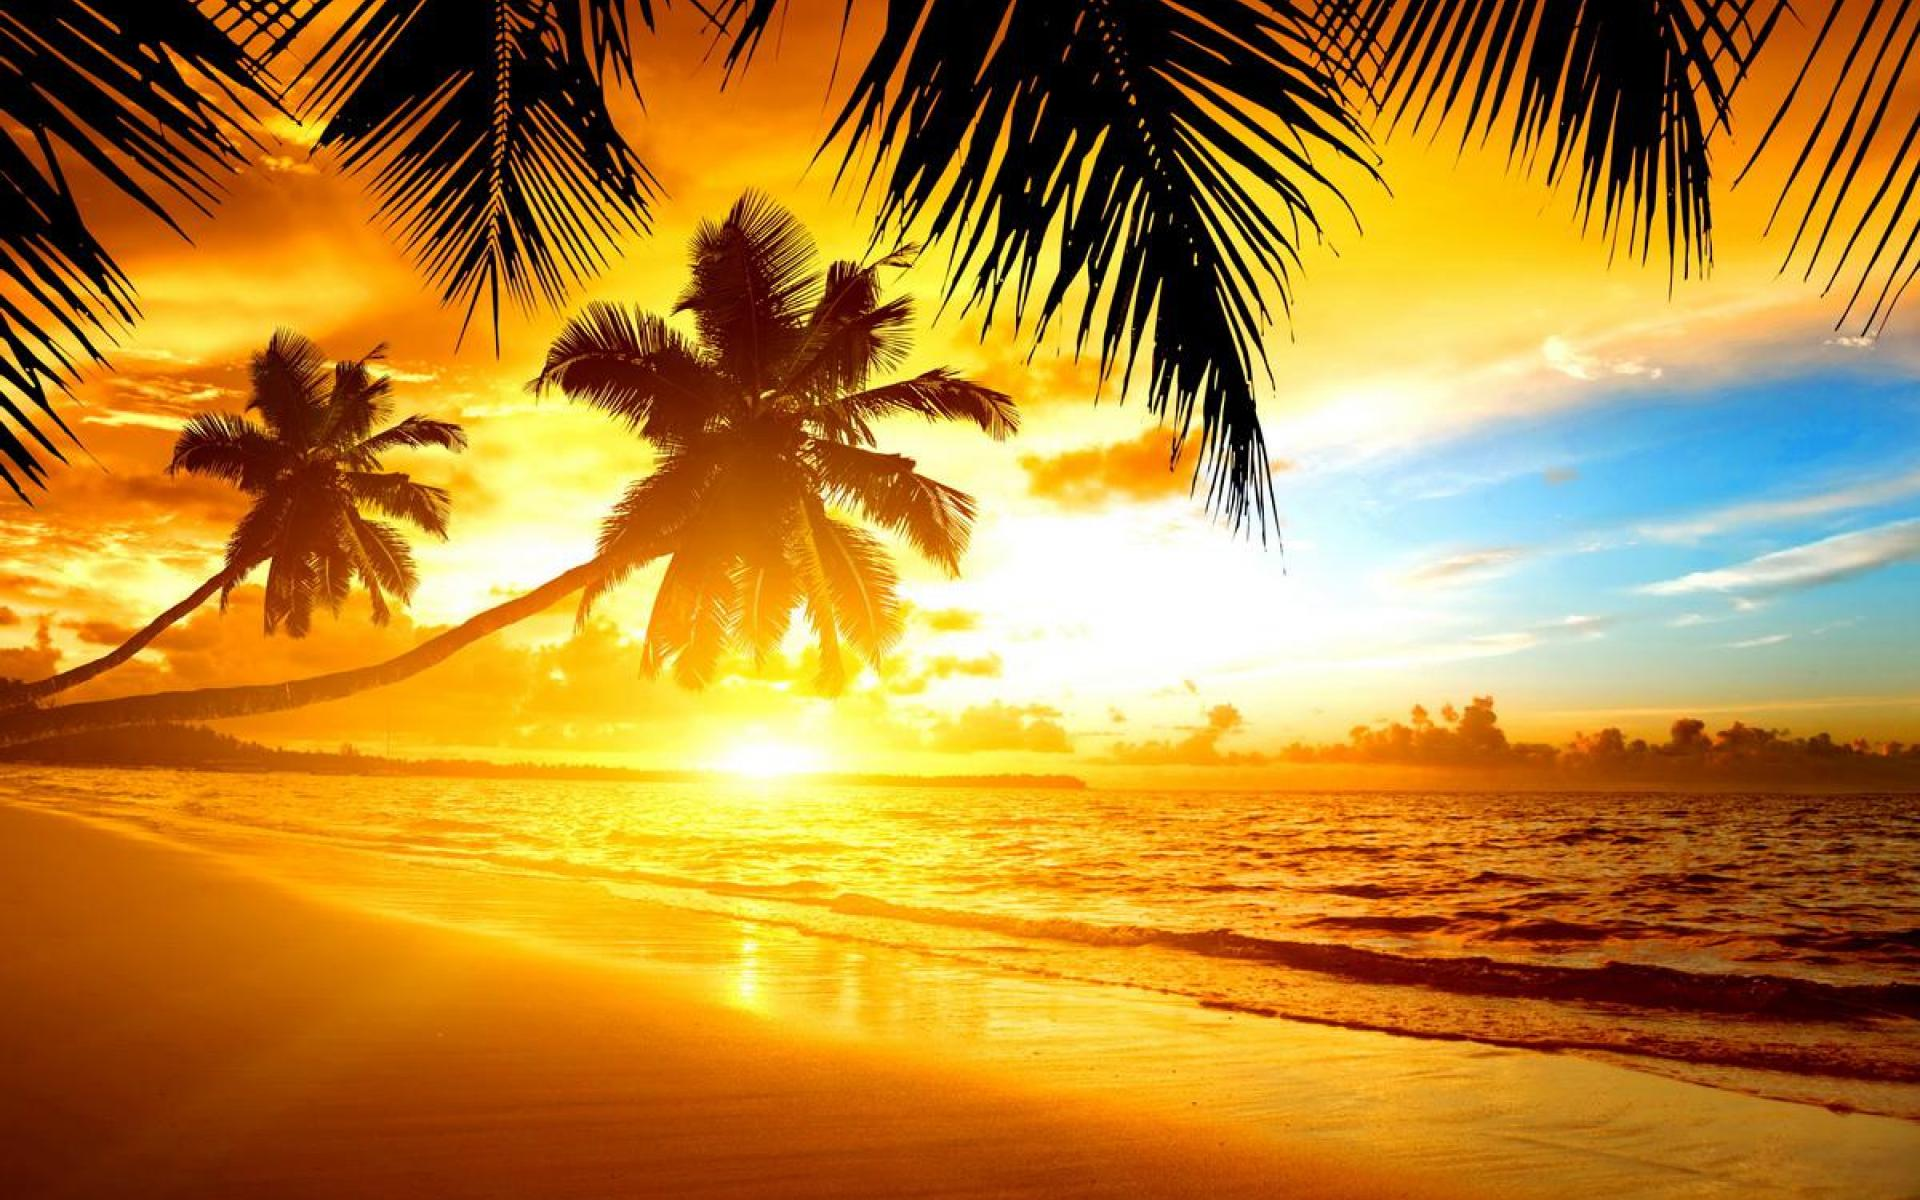 Large Tropical Island Sunset Wallpaper 1920x1200